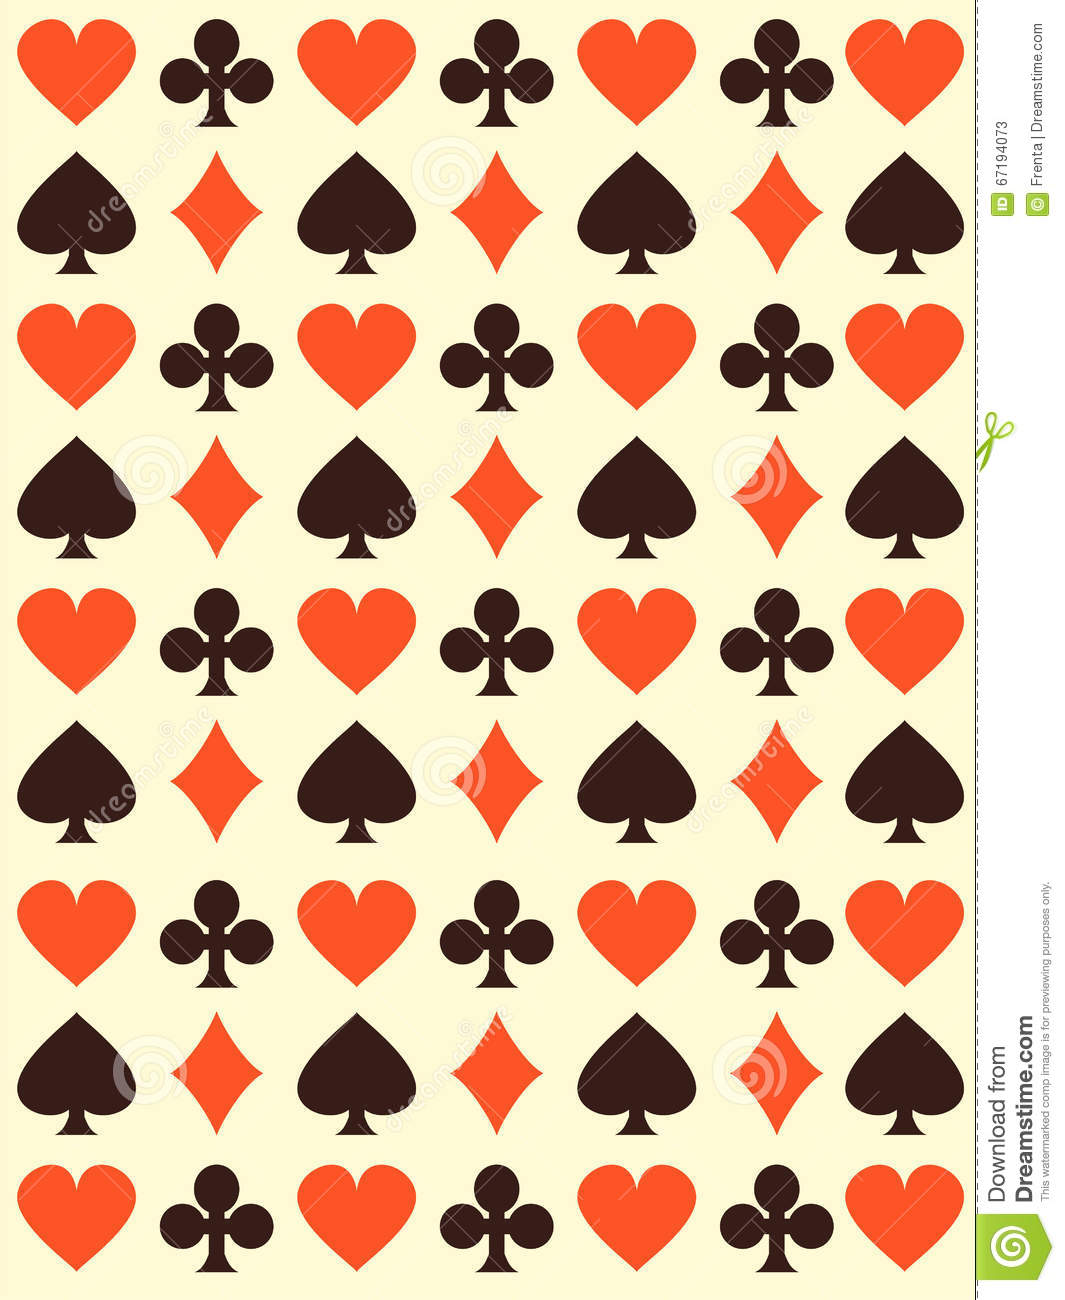 Vector background with playing cards symbols stock vector vector background with playing cards symbols biocorpaavc